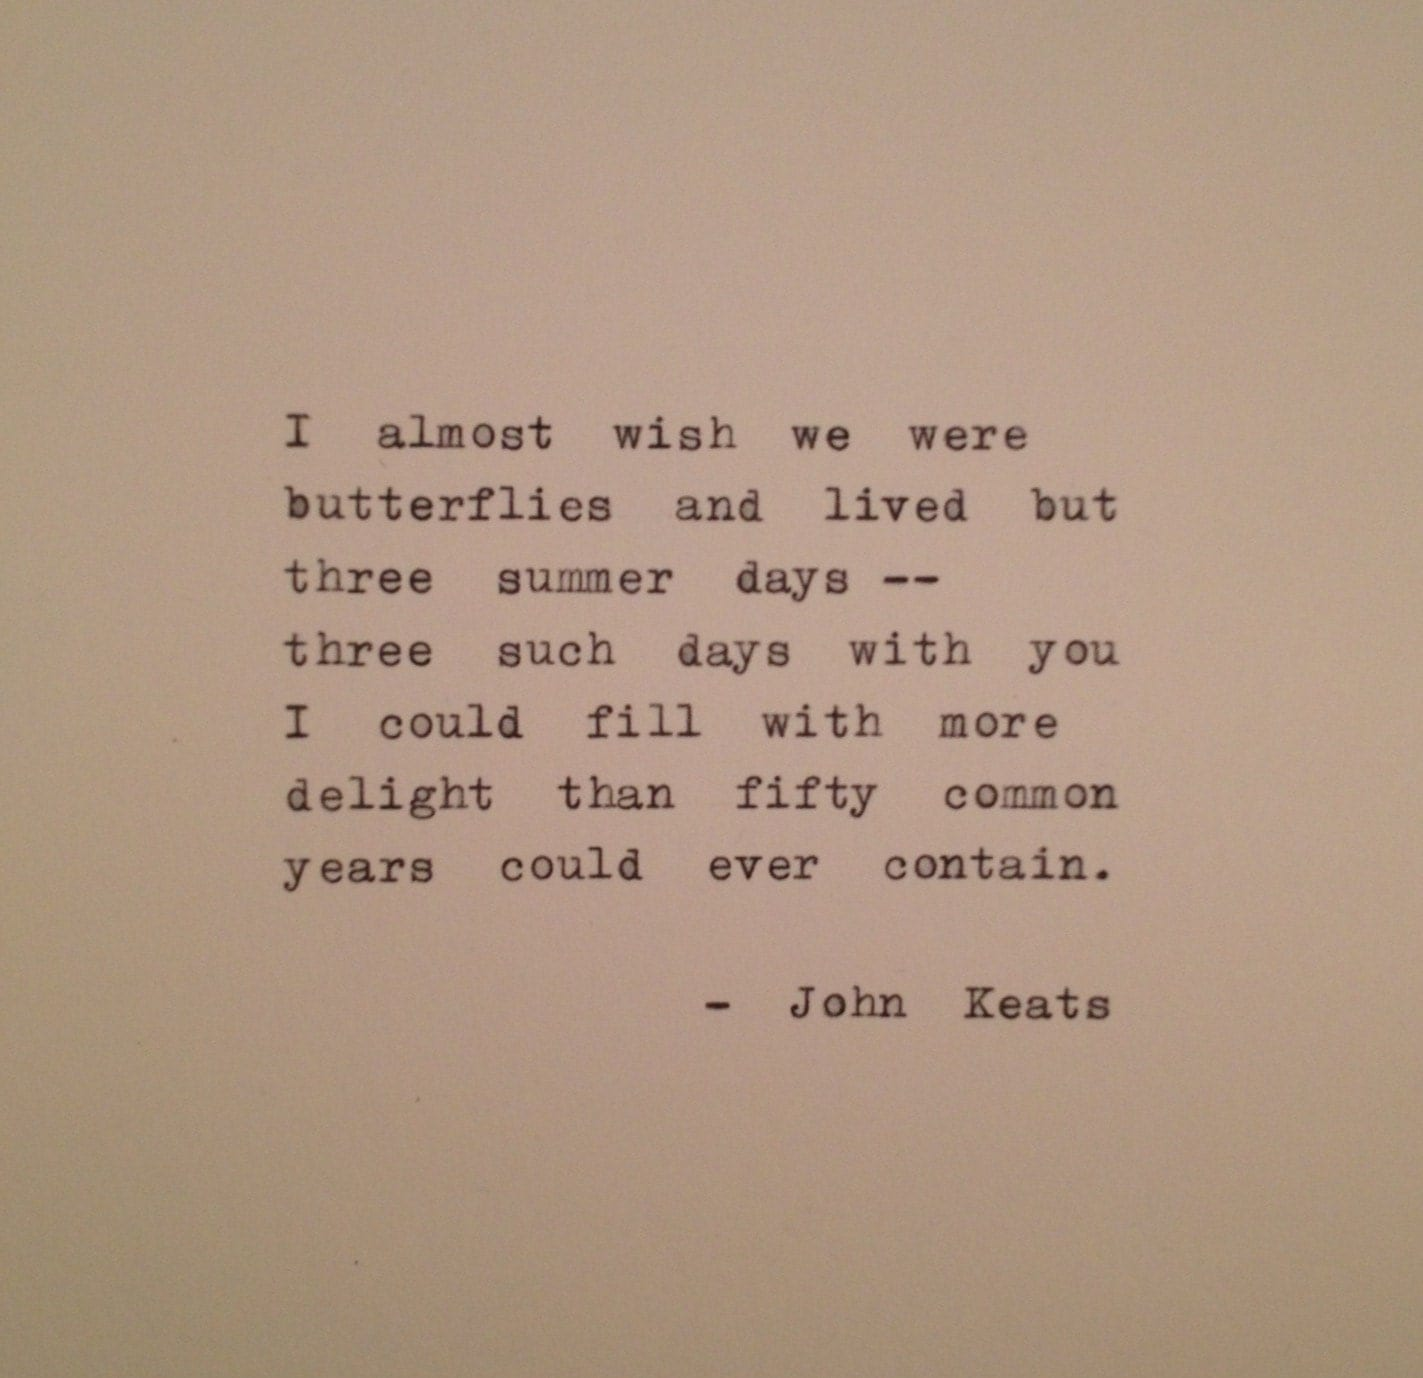 Poem Quotes: John Keats Quote Typed On Typewriter / Typewriter Poem